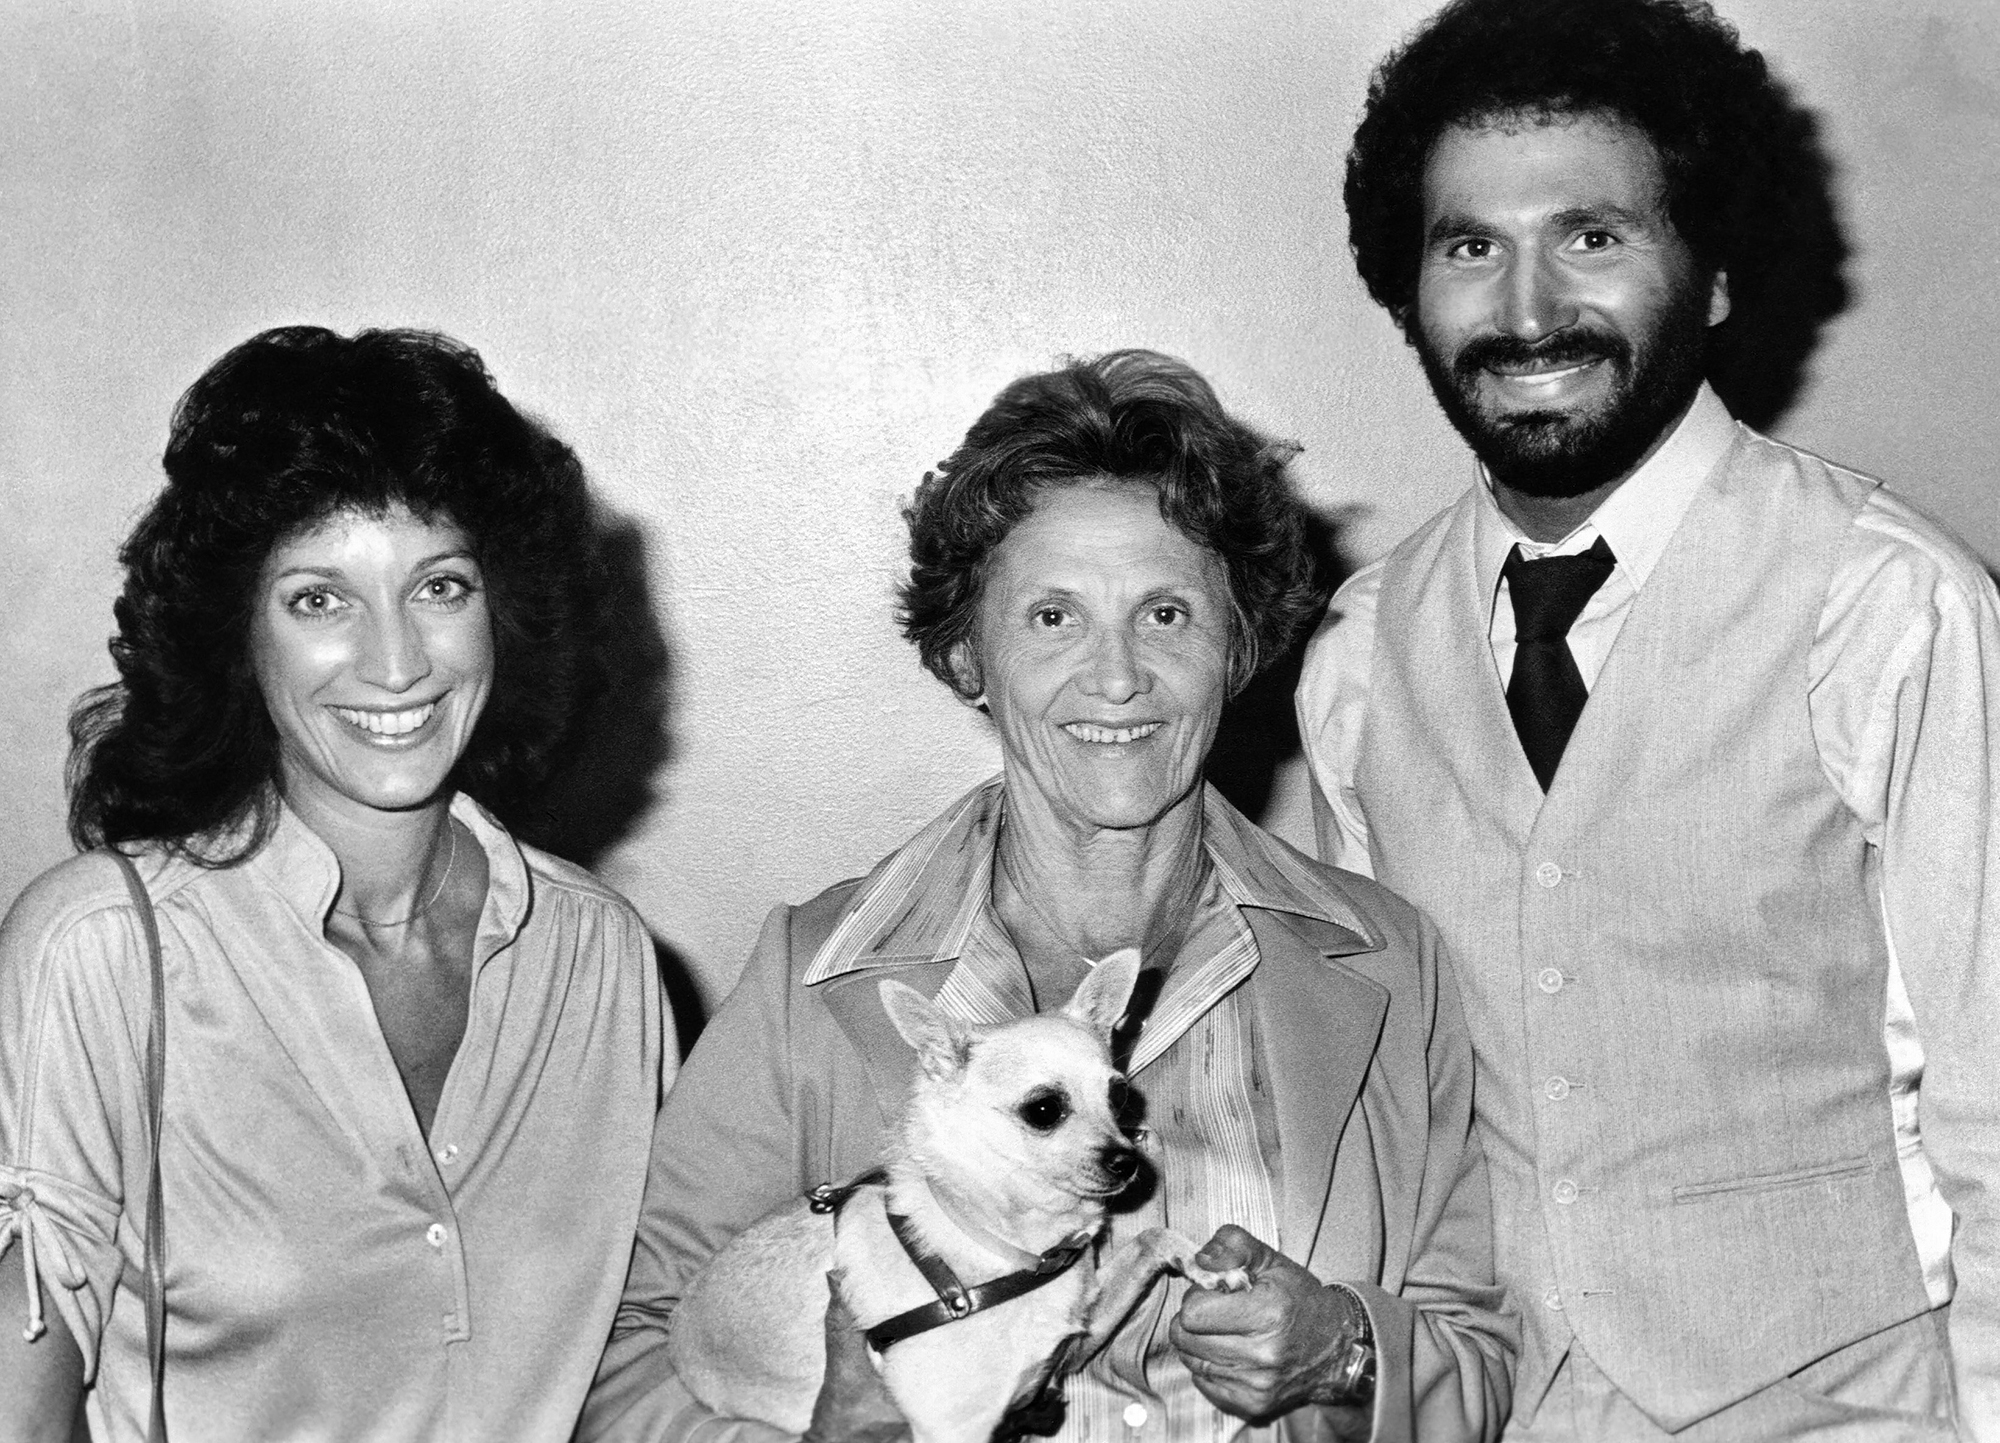 FAST BREAK, from left, Randee Heller, Connie Sawyer, Gabe Kaplan, on-set, 1979, ©Columbia Pictures/C